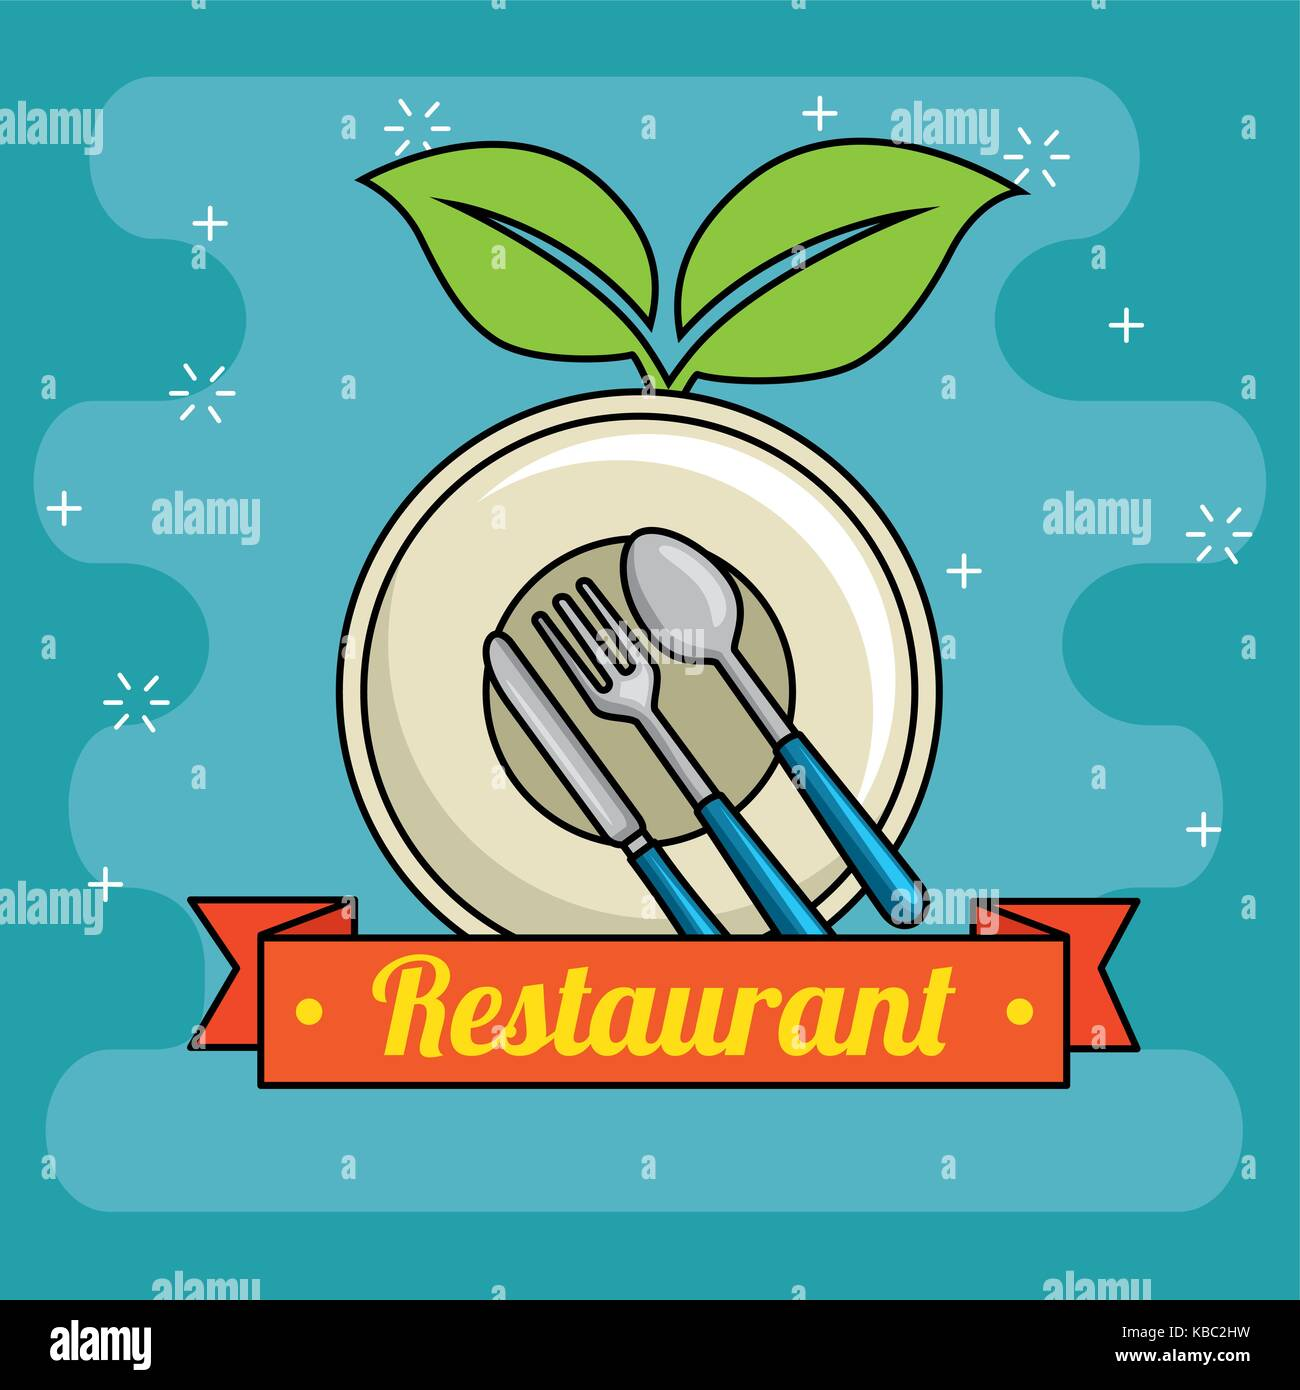 Vintage restaurant logo stock photos vintage restaurant logo restaurant logo design stock image buycottarizona Image collections